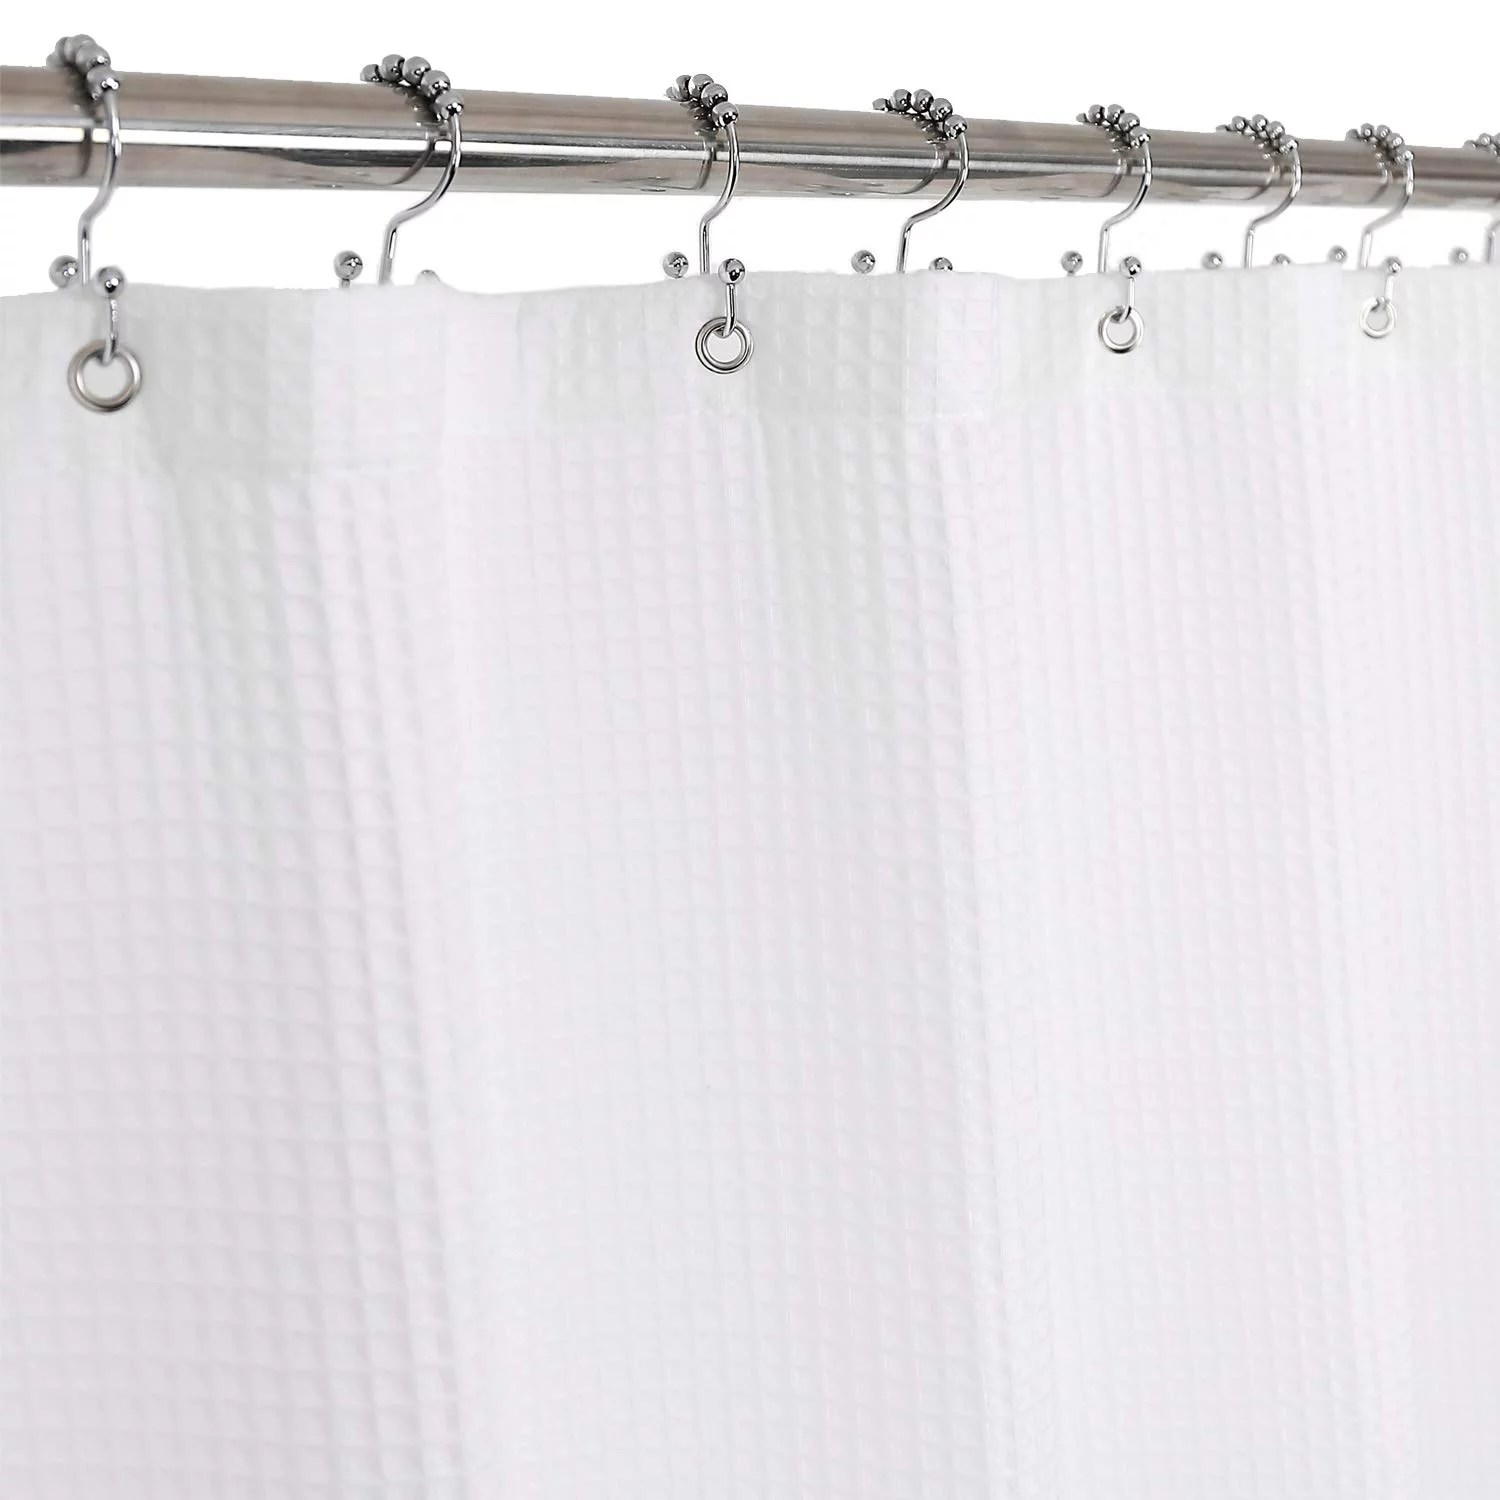 Barossa Design Cotton Shower Curtain Honeycomb Waffle Weave